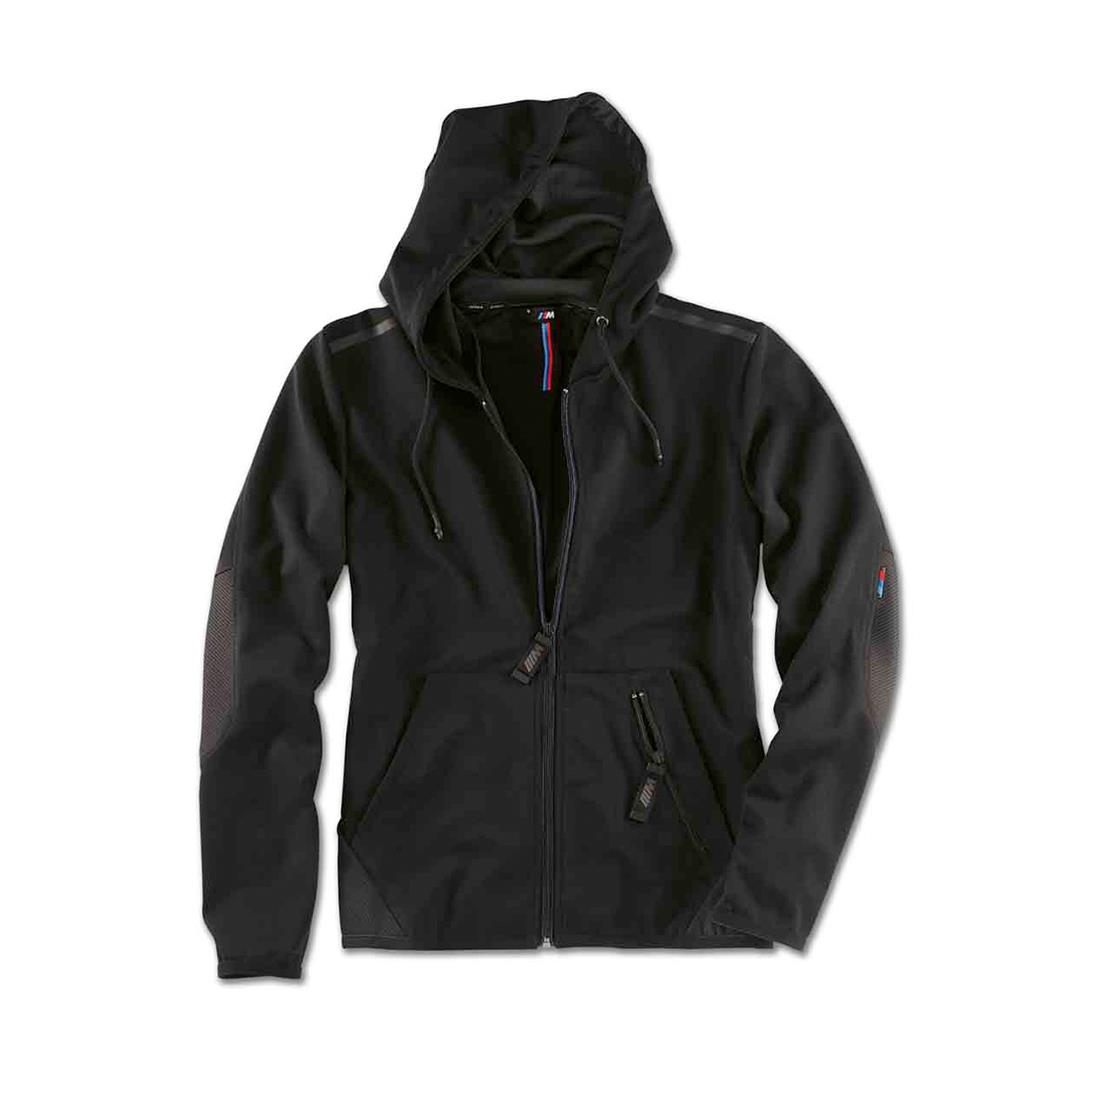 BMW M SWEATJACKET MENS